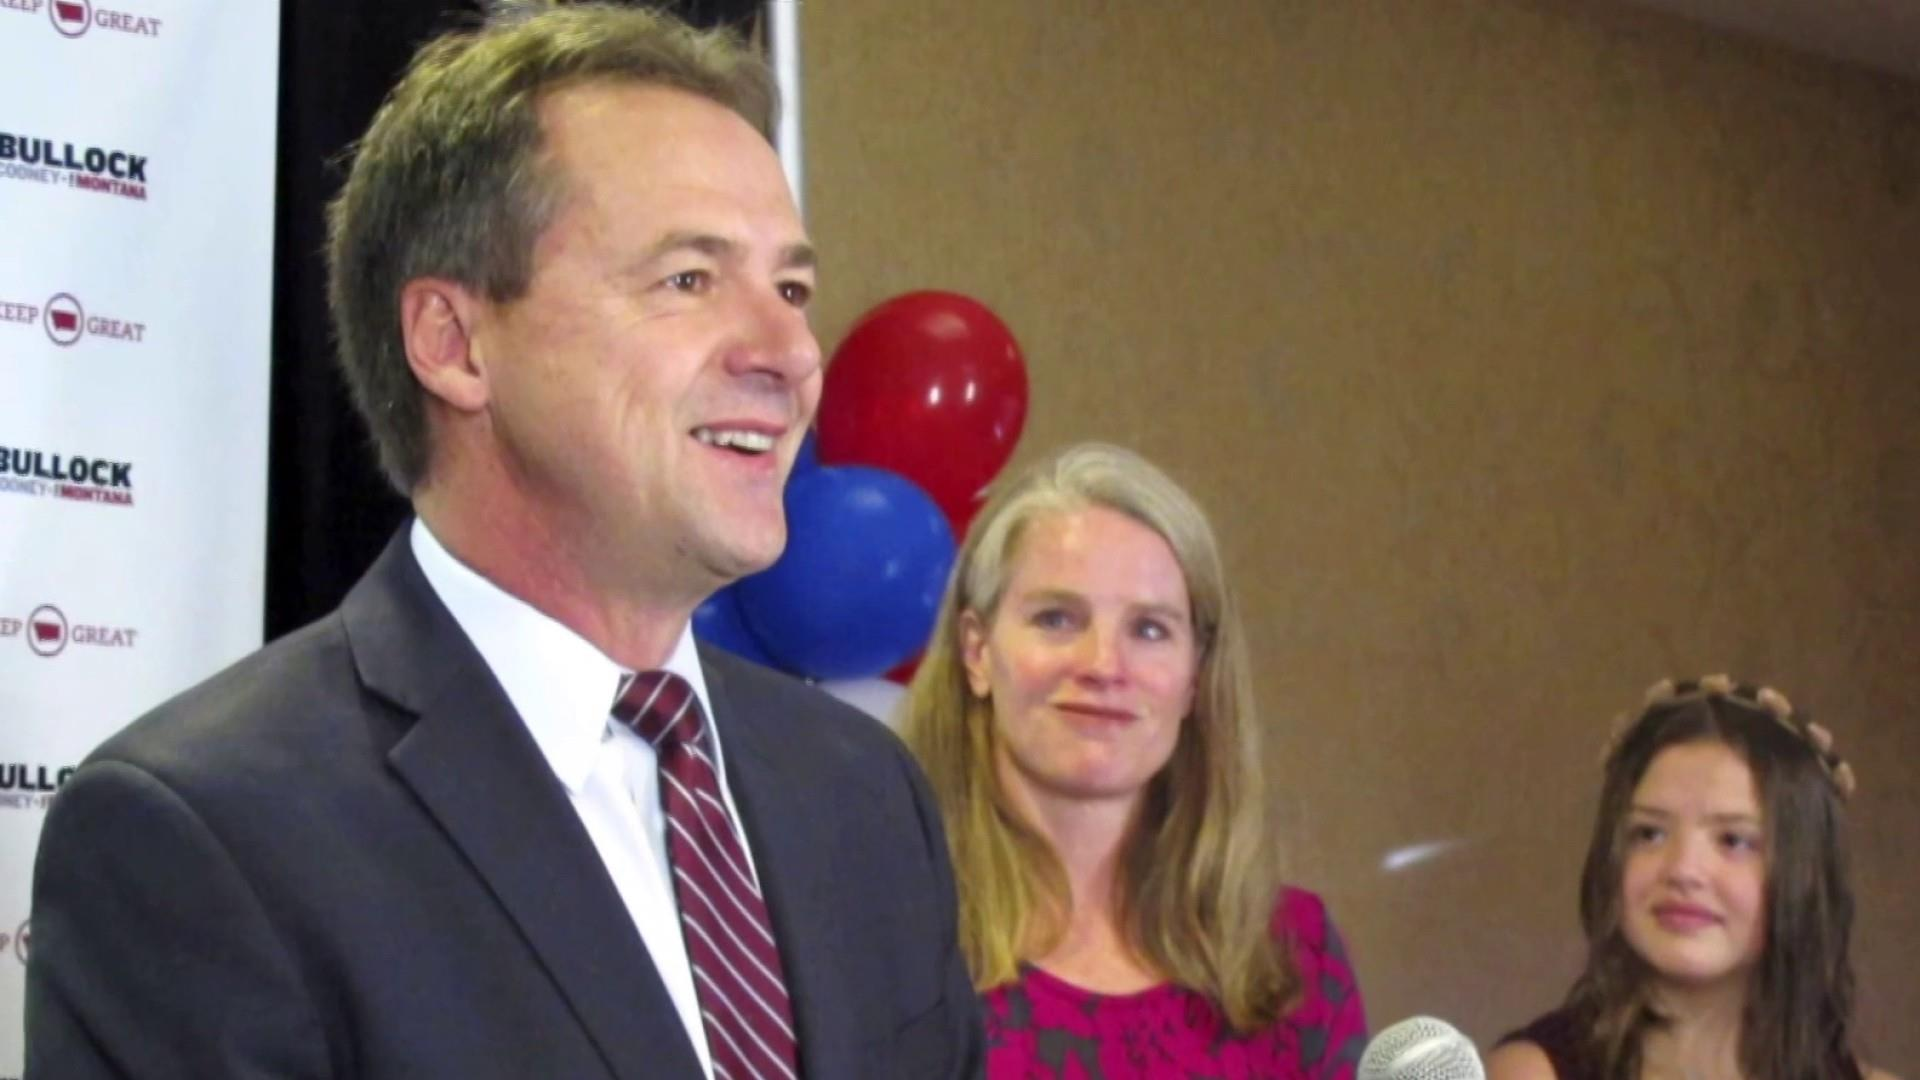 Bullock record shows implementing progressive agenda in red state